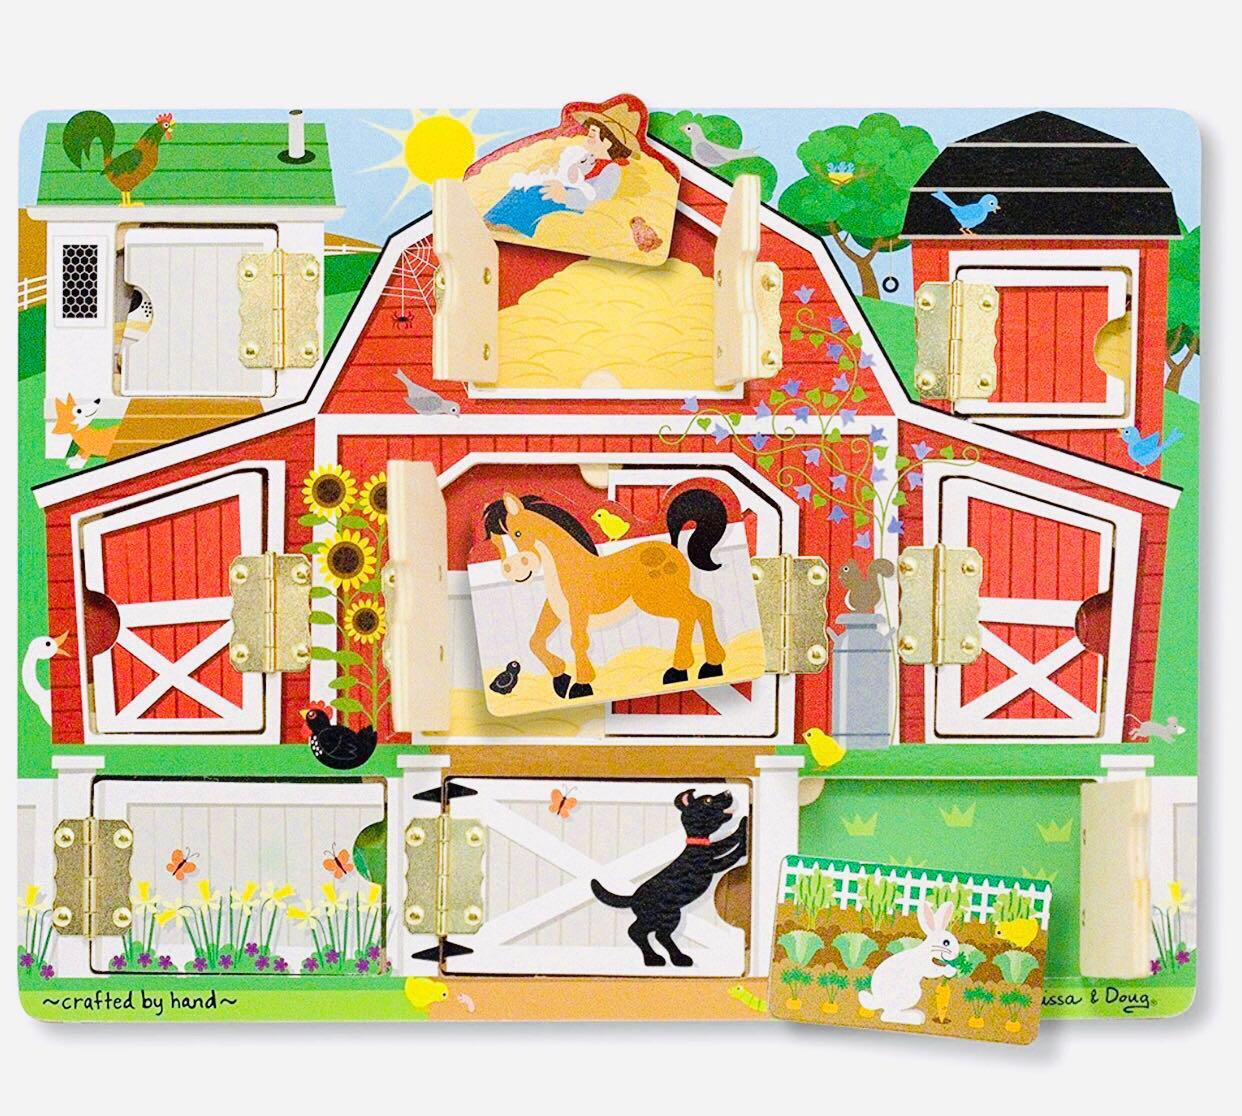 Hide Farm Melissaamp; Doug Seek Board And Wooden Activity With 0P8nwOk